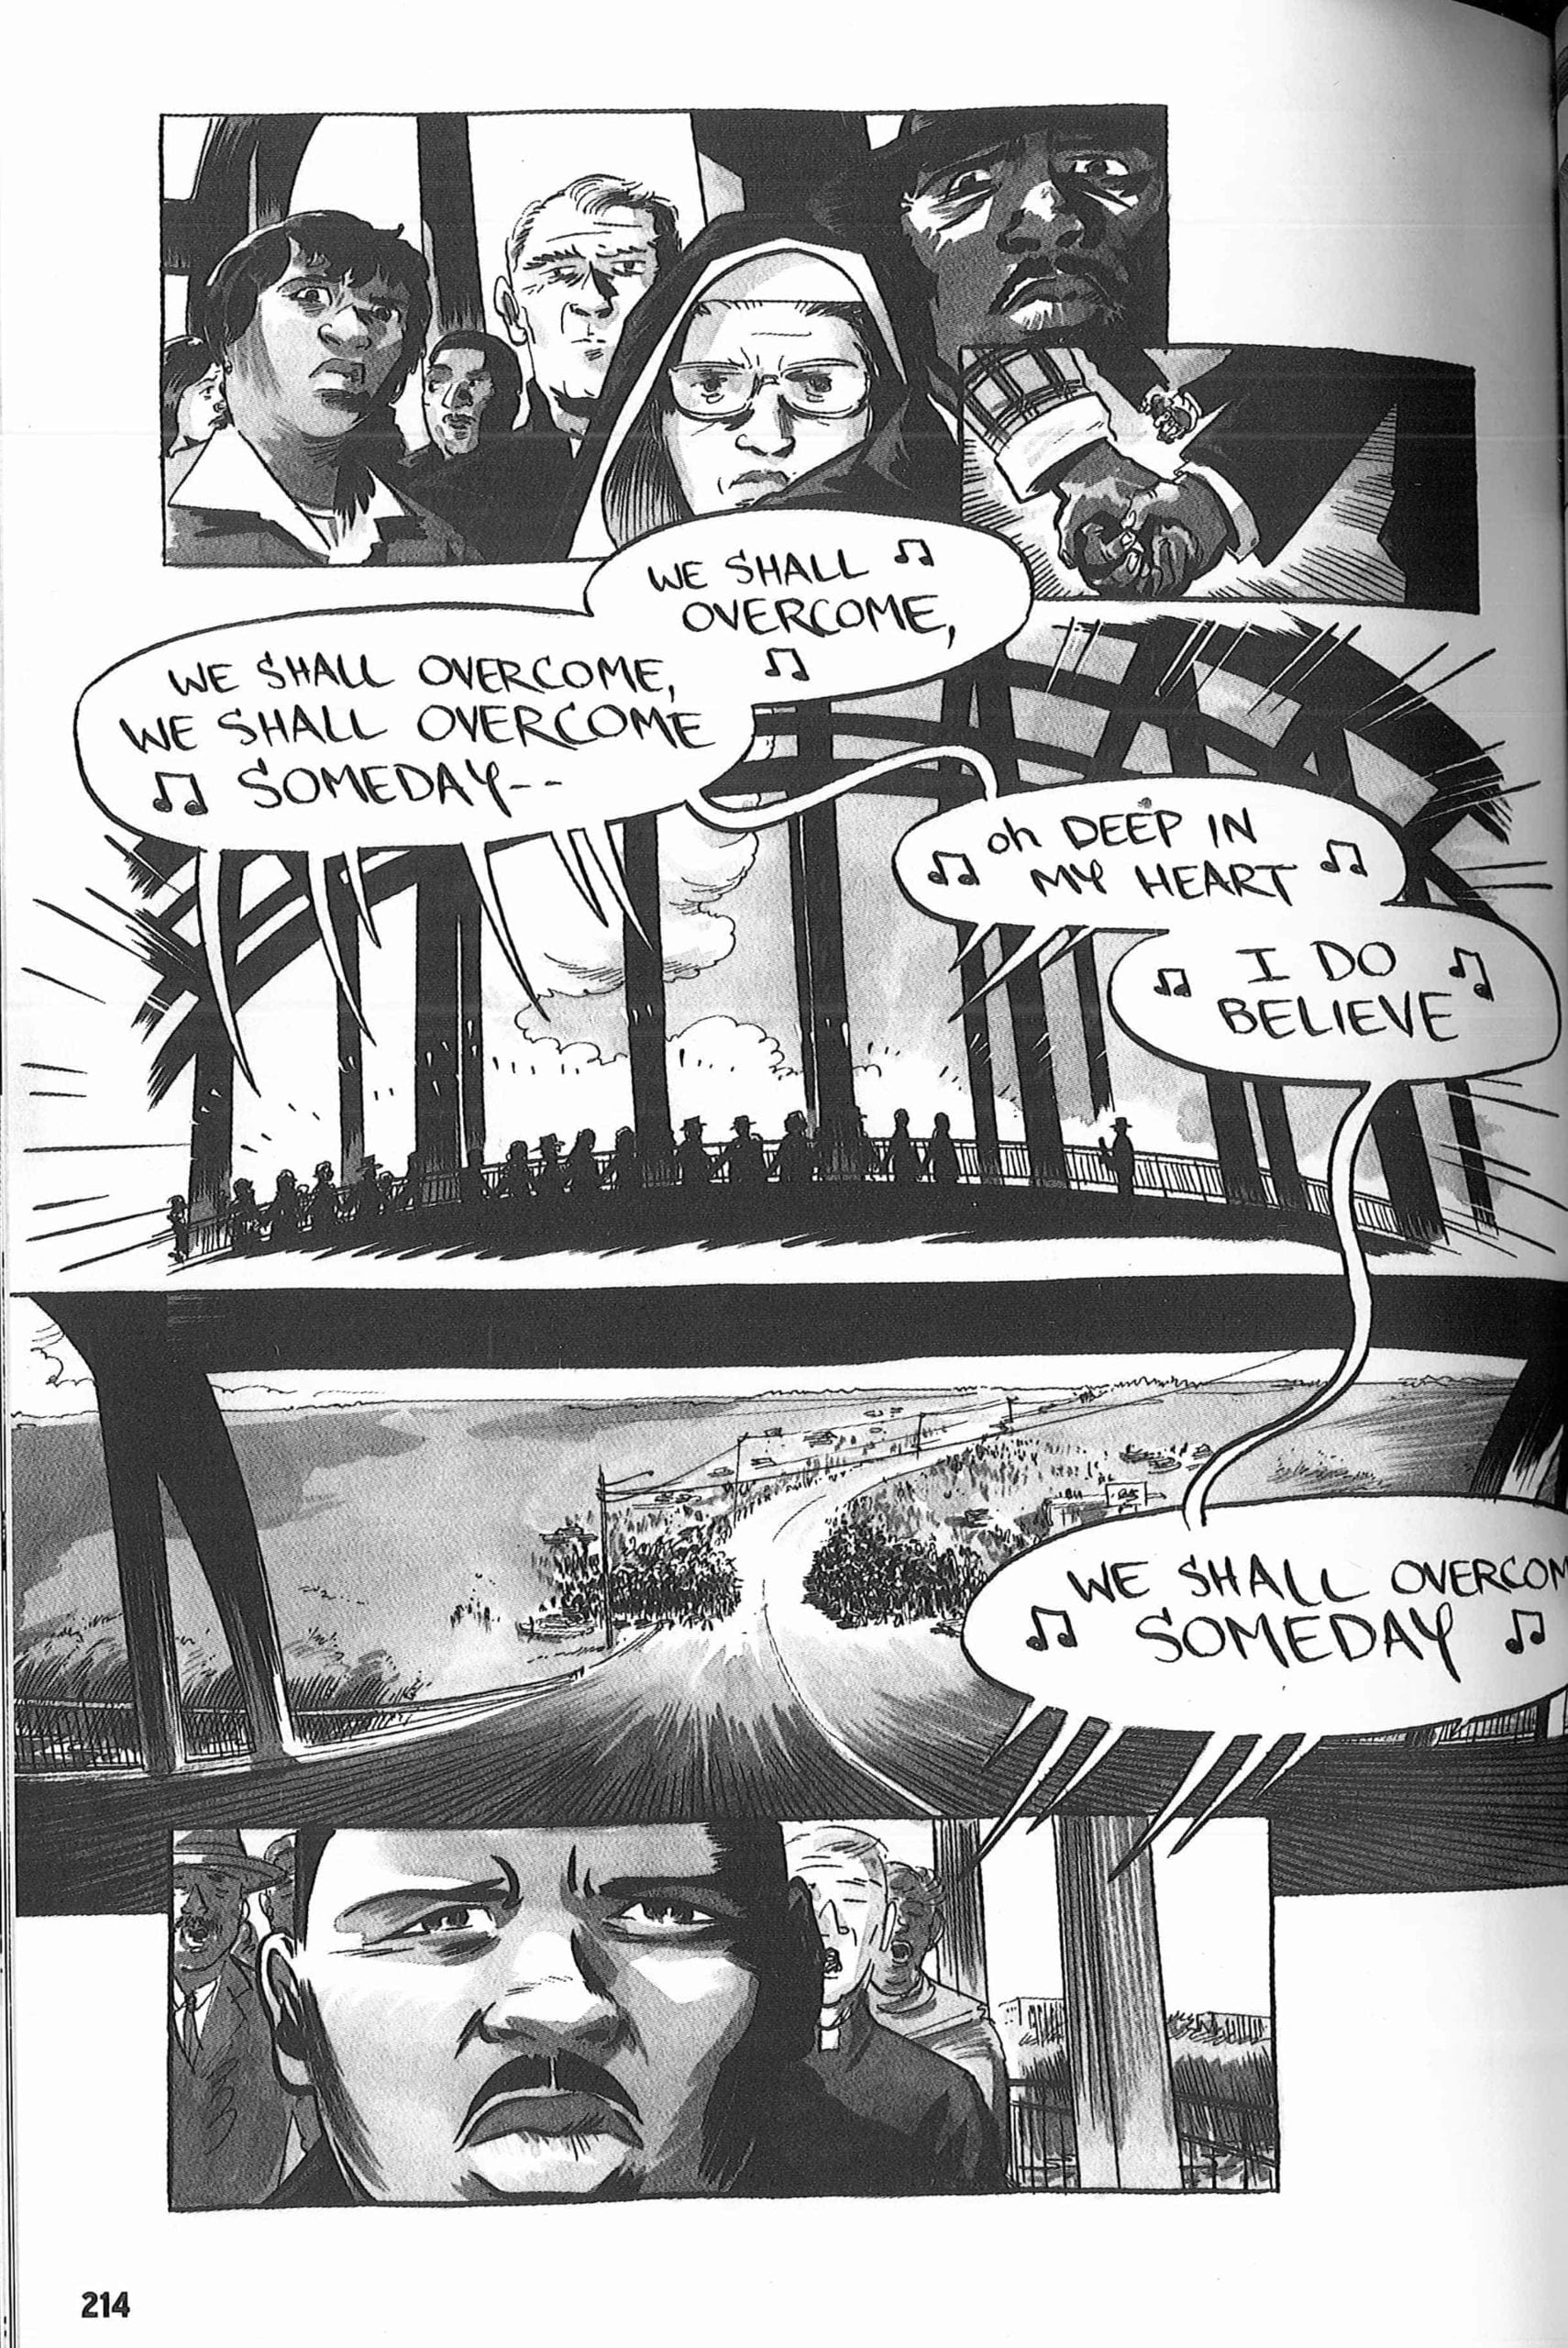 March Trilogy, John Lewis, Important Graphic Novels